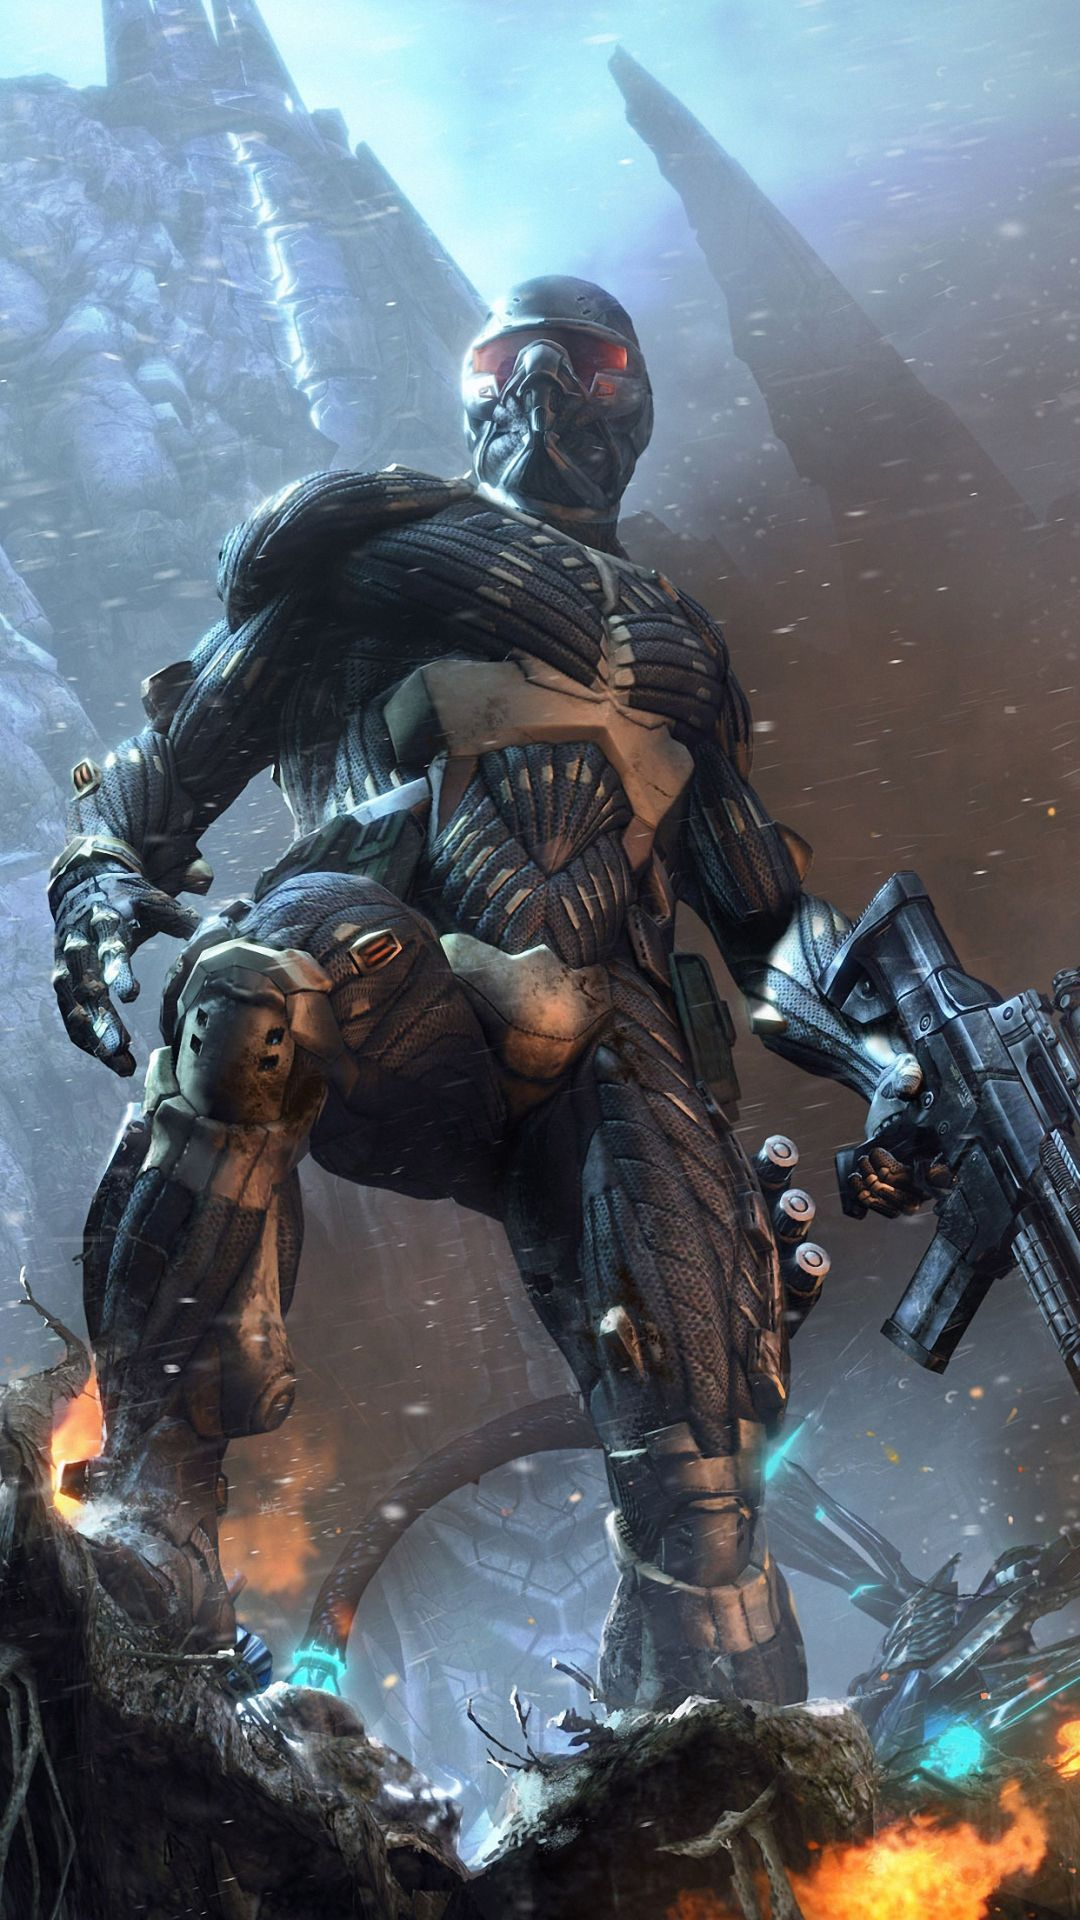 crysis worrior game iphone 6 wallpapers HD Iphone 6